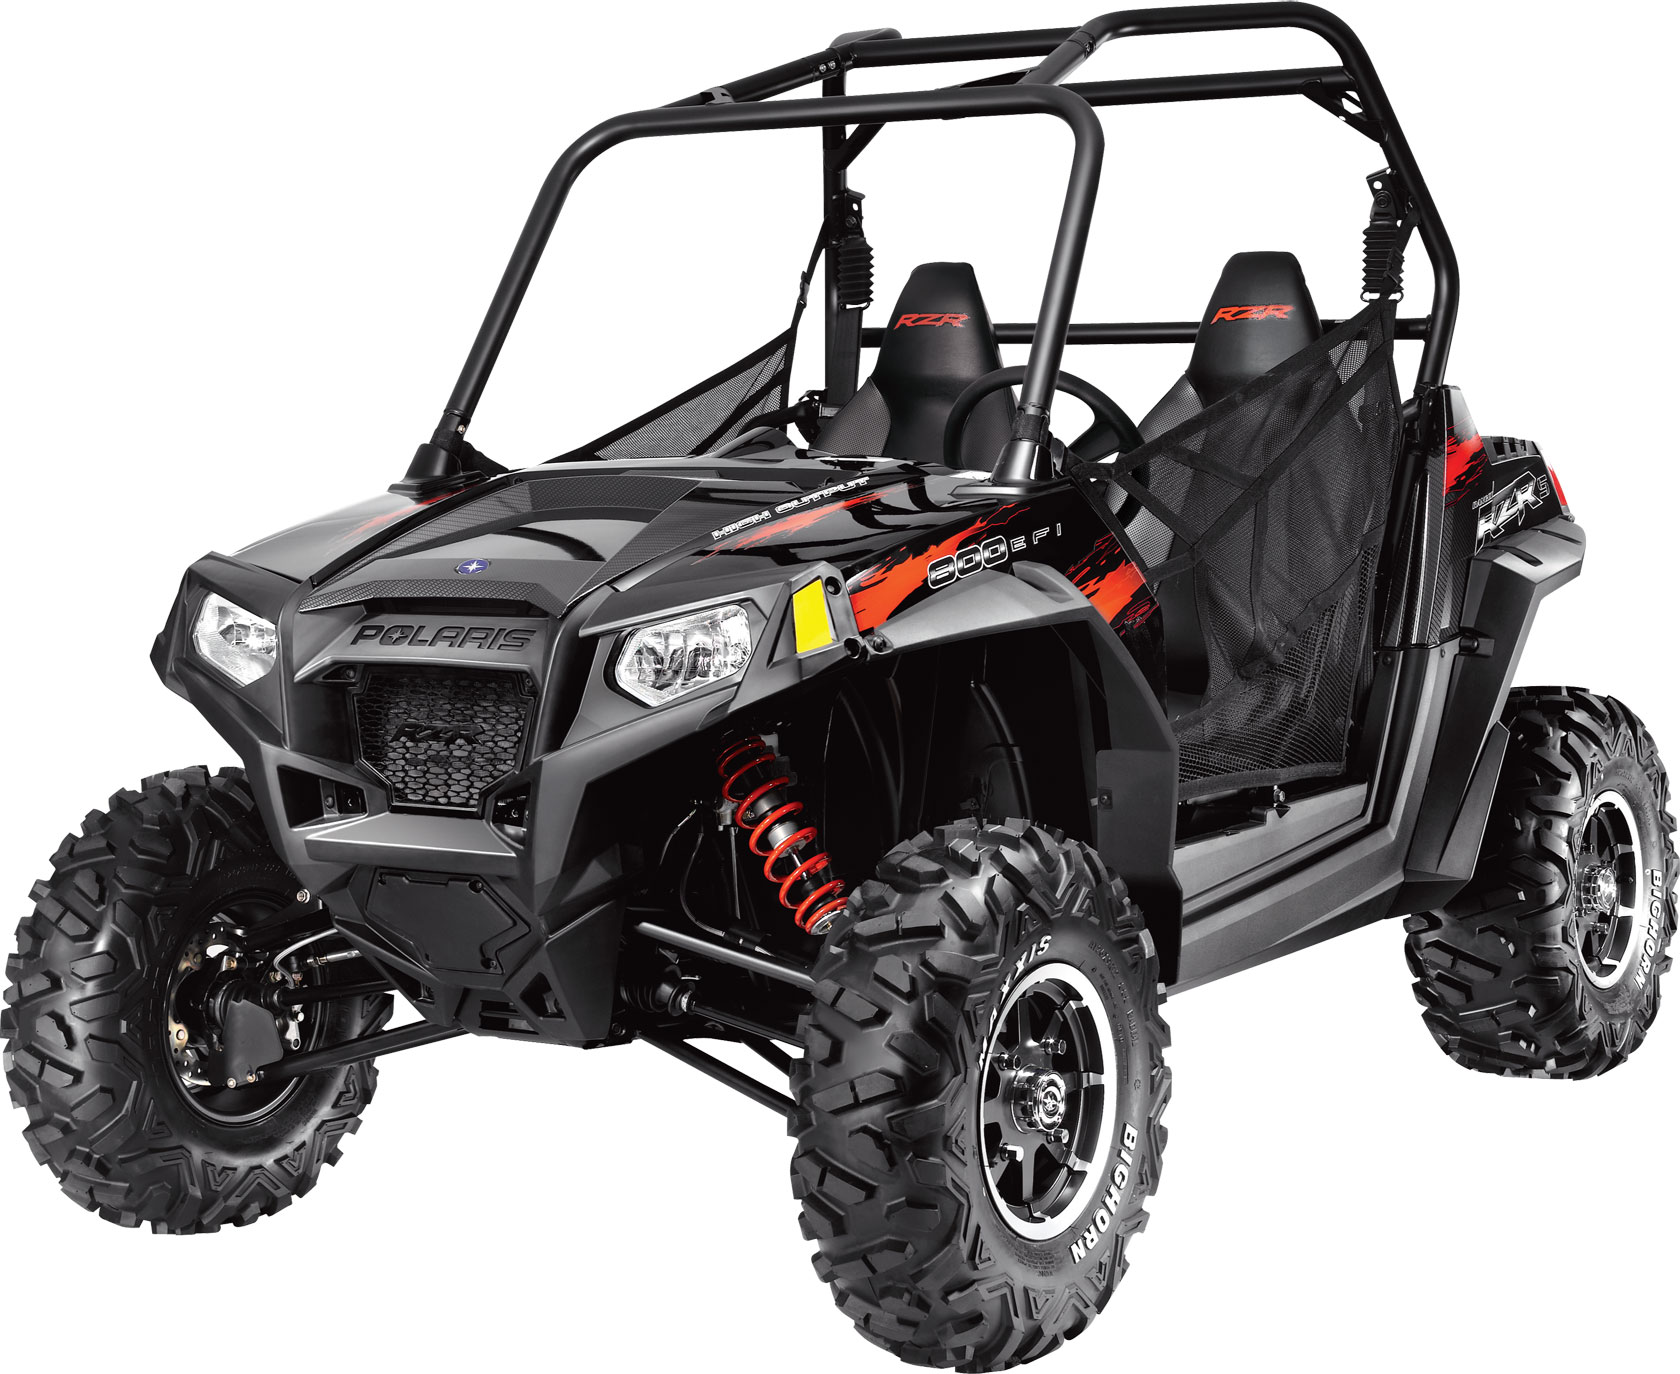 polaris rzr s 800 le 2010 2011 autoevolution